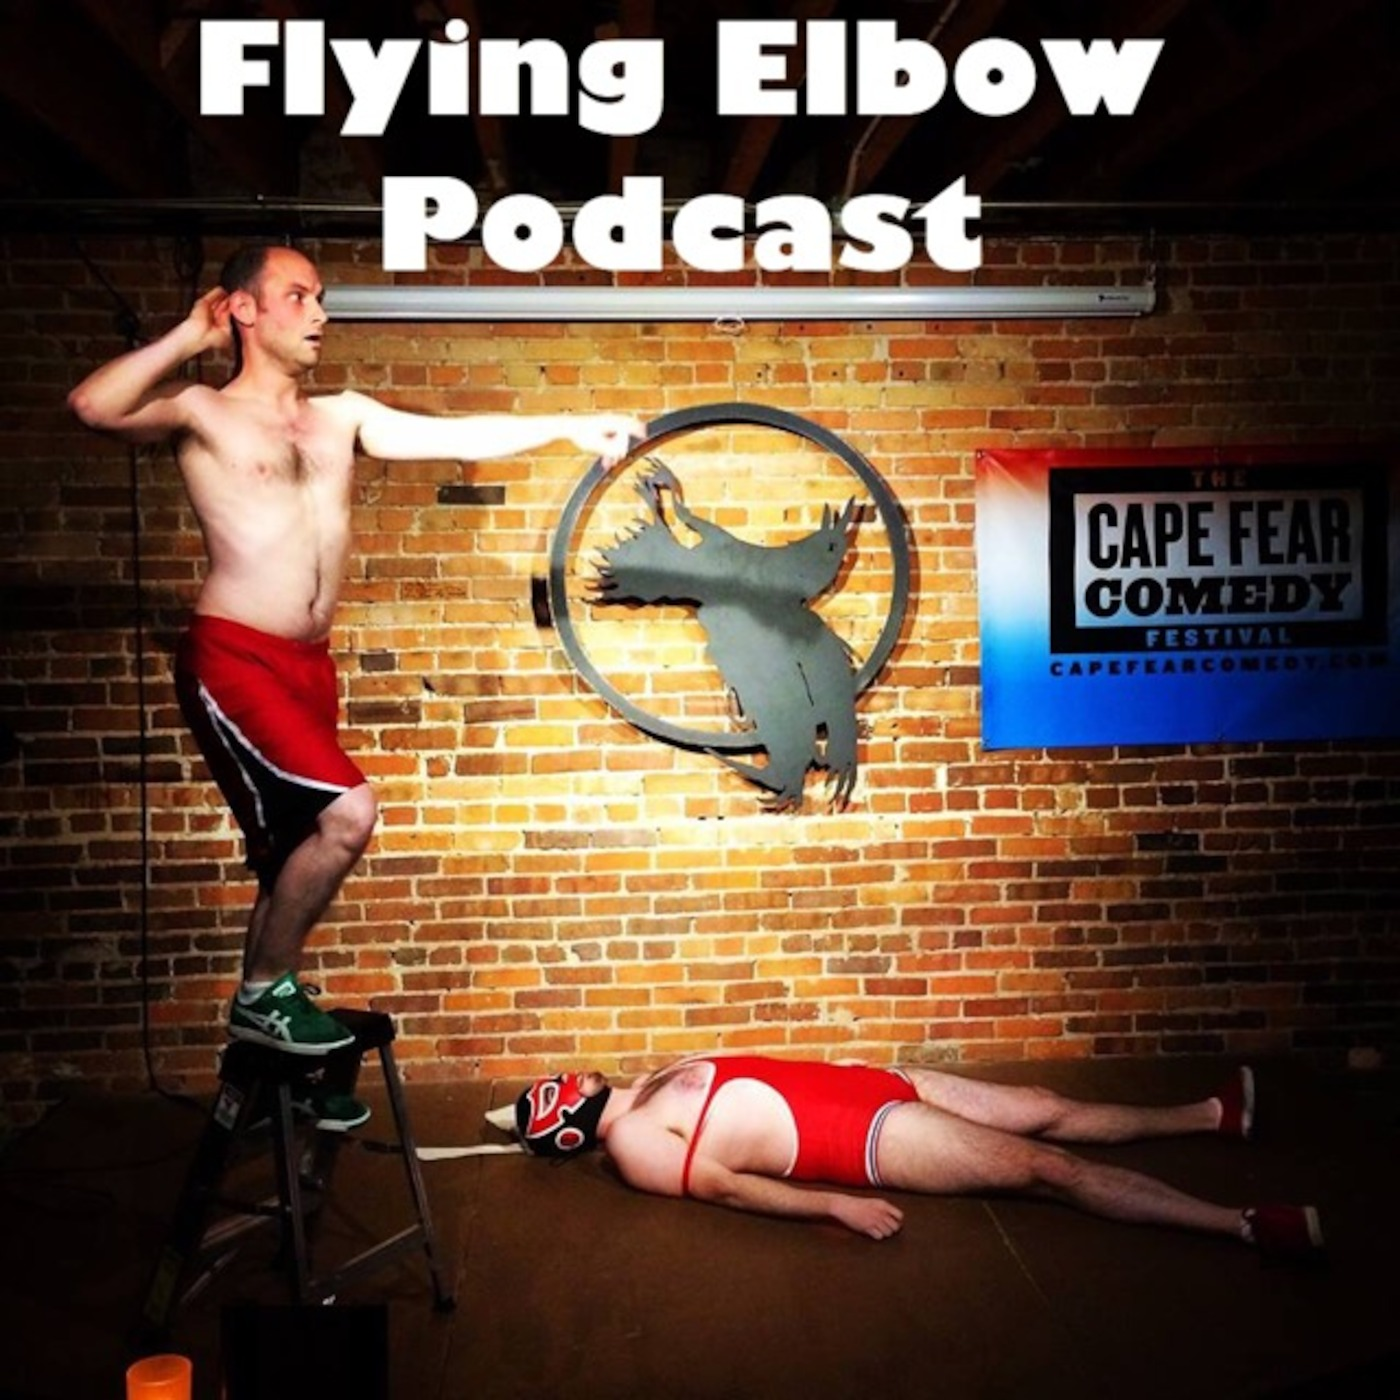 Flying Elbow Podcast